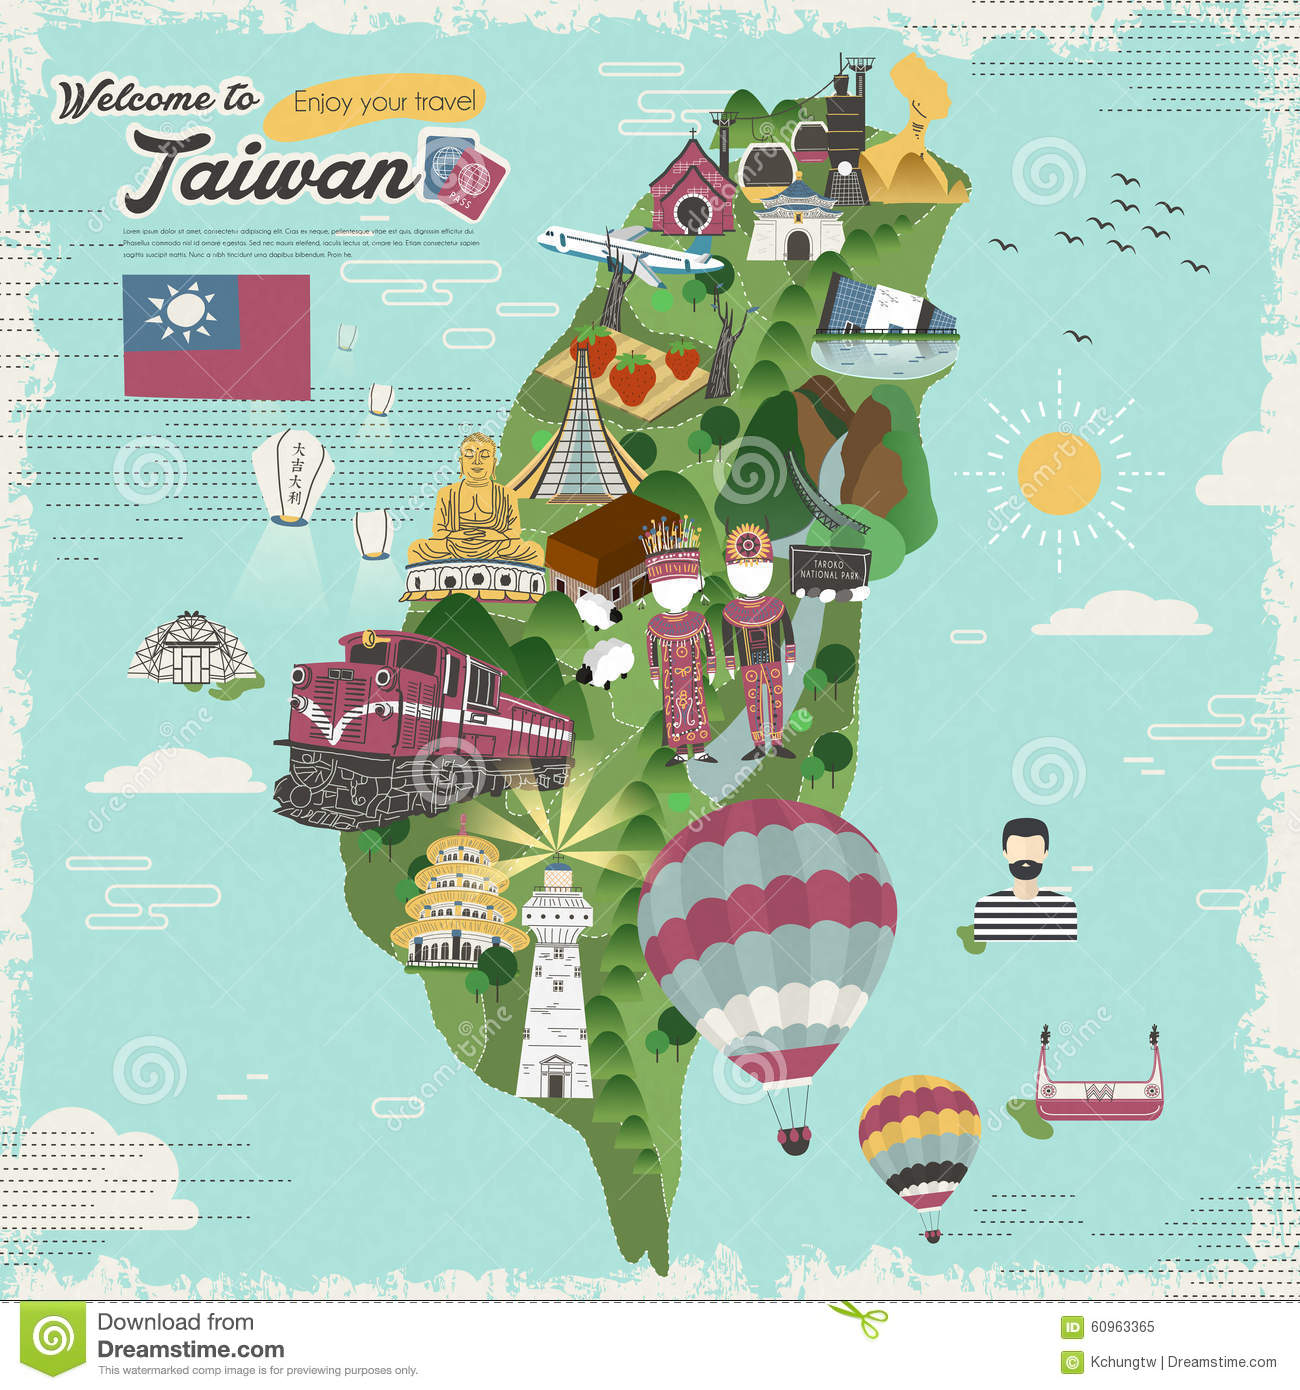 Taiwan Travel Map Illustration Image 60963648 – Taiwan Tourist Attractions Map